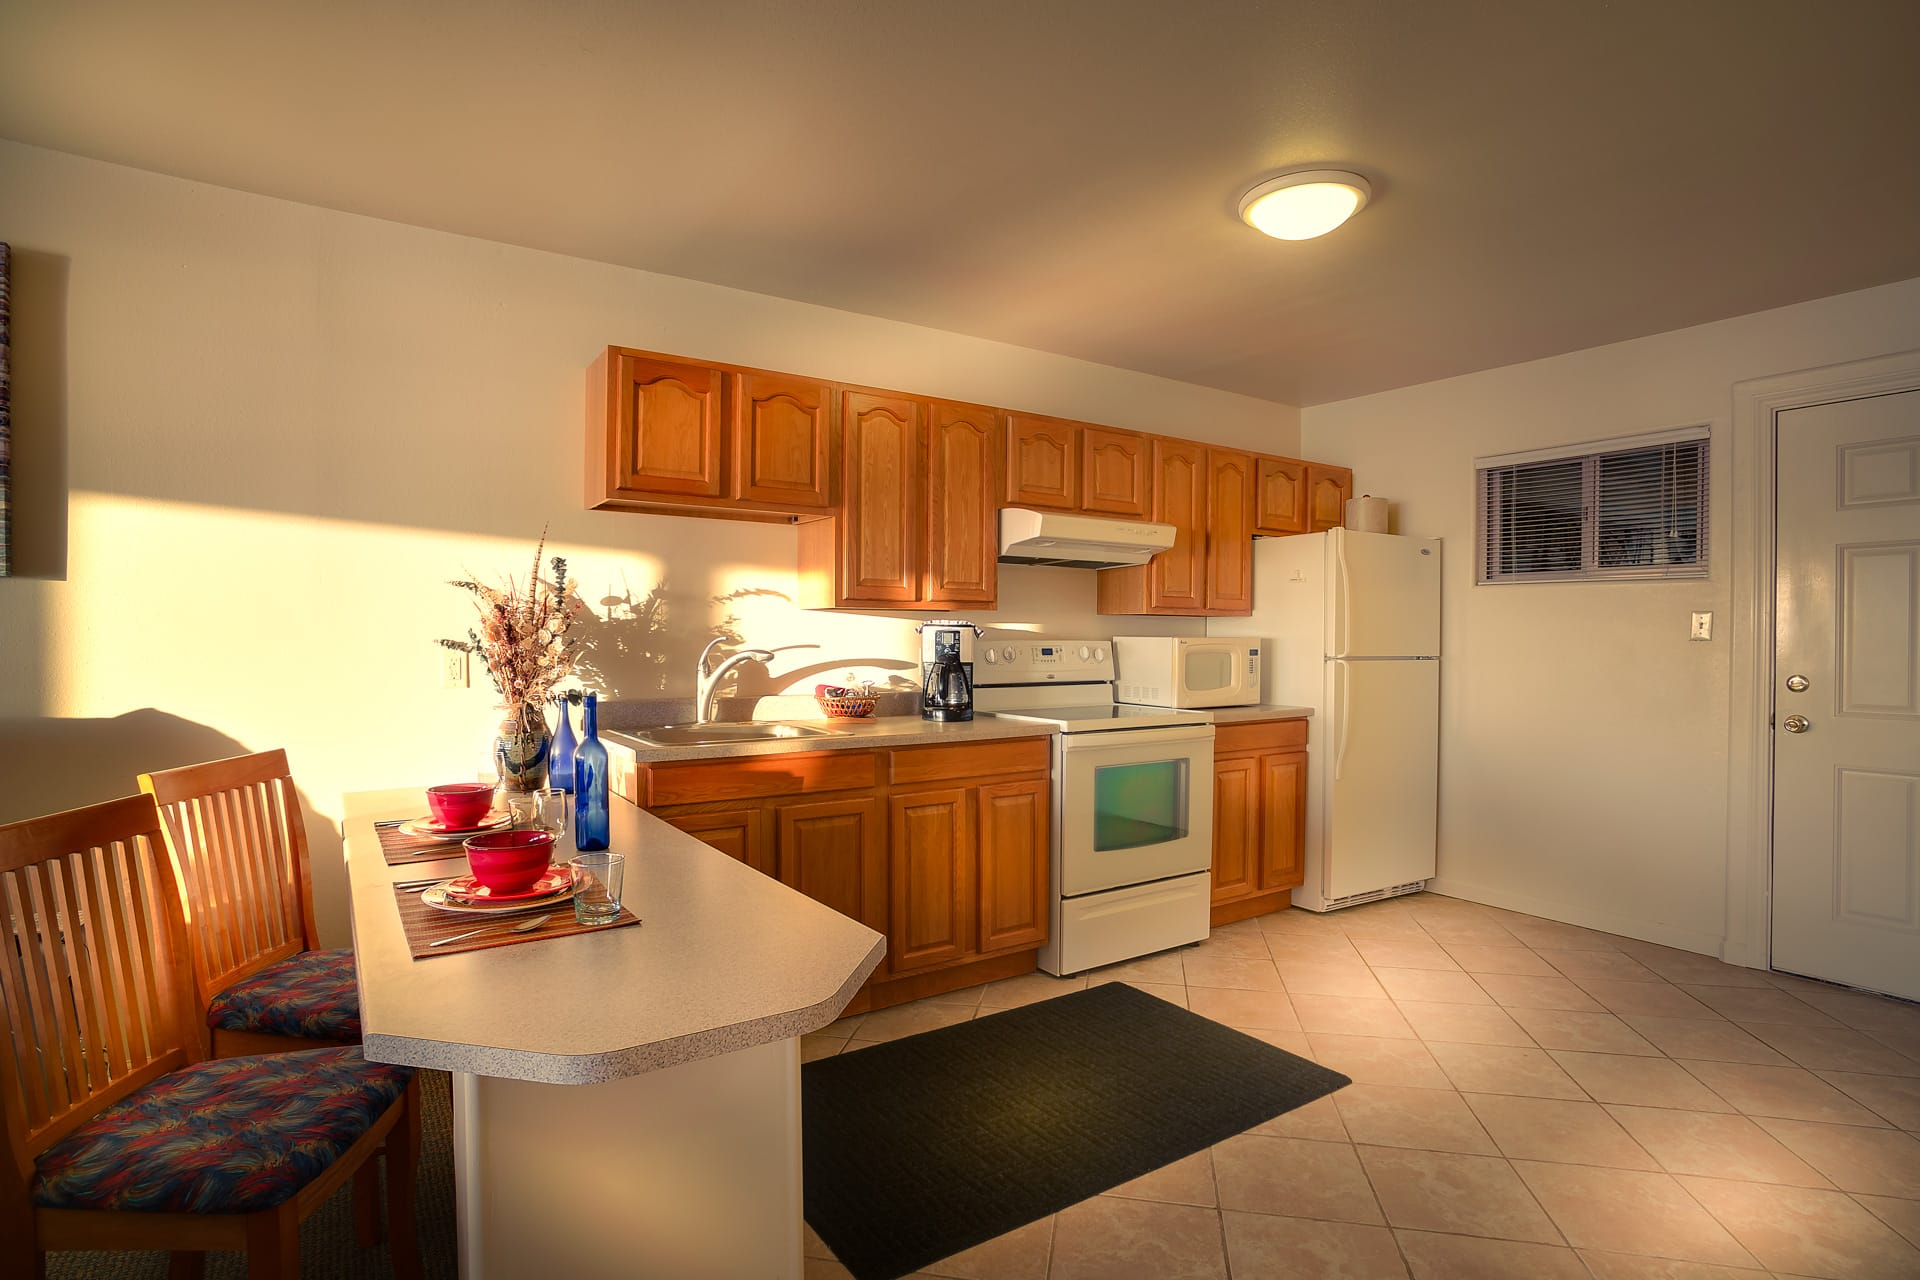 Luxury Kitchen Suite Hotel Room With Full Size Kitchen Appliances, Wood  Cabinets, And